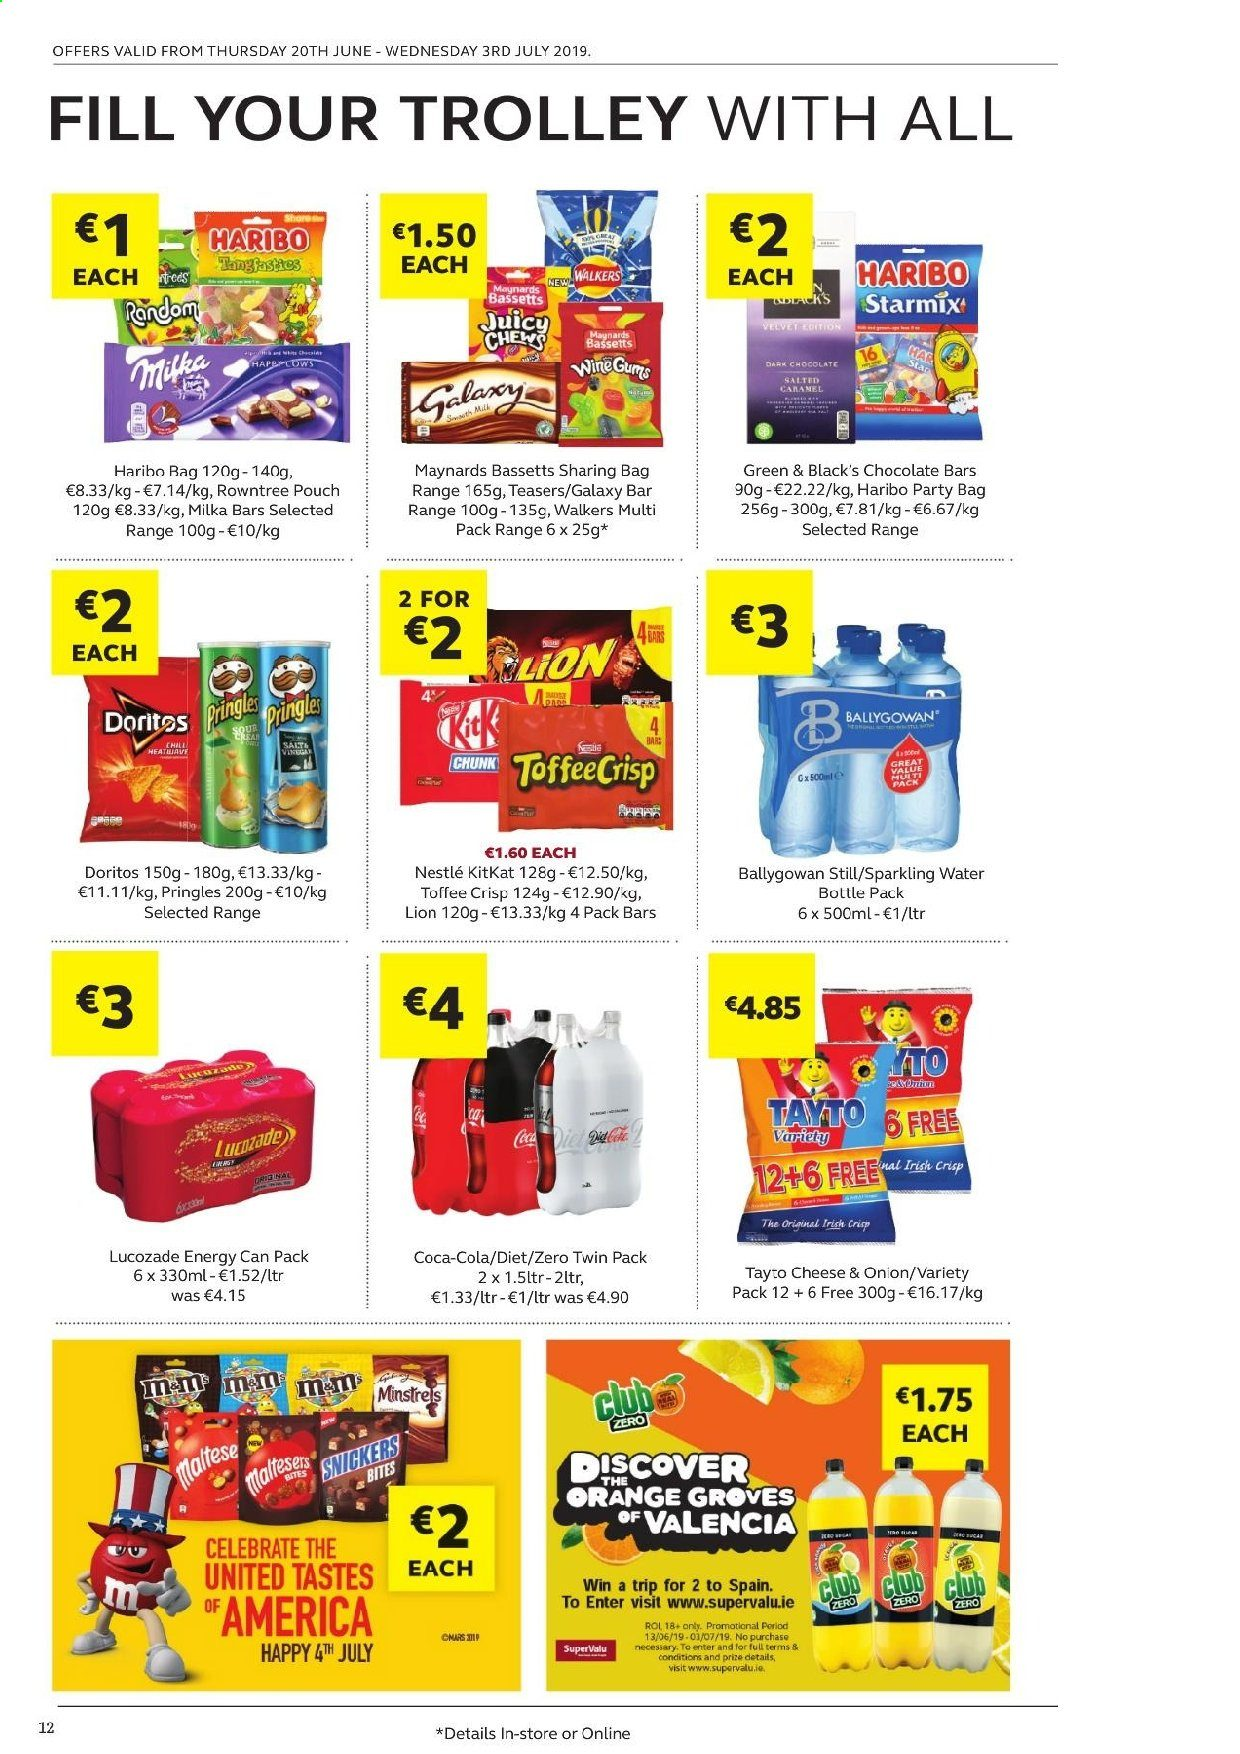 SuperValu offer  - 20.6.2019 - 3.7.2019 - Sales products - orange, milk, Nestlé, chocolate, Haribo, Snickers, KitKat, toffee, chewing gum, Doritos, Pringles, TAYTO, Coca-Cola, Lucozade, Ballygowan, trolley, Samsung Galaxy. Page 12.